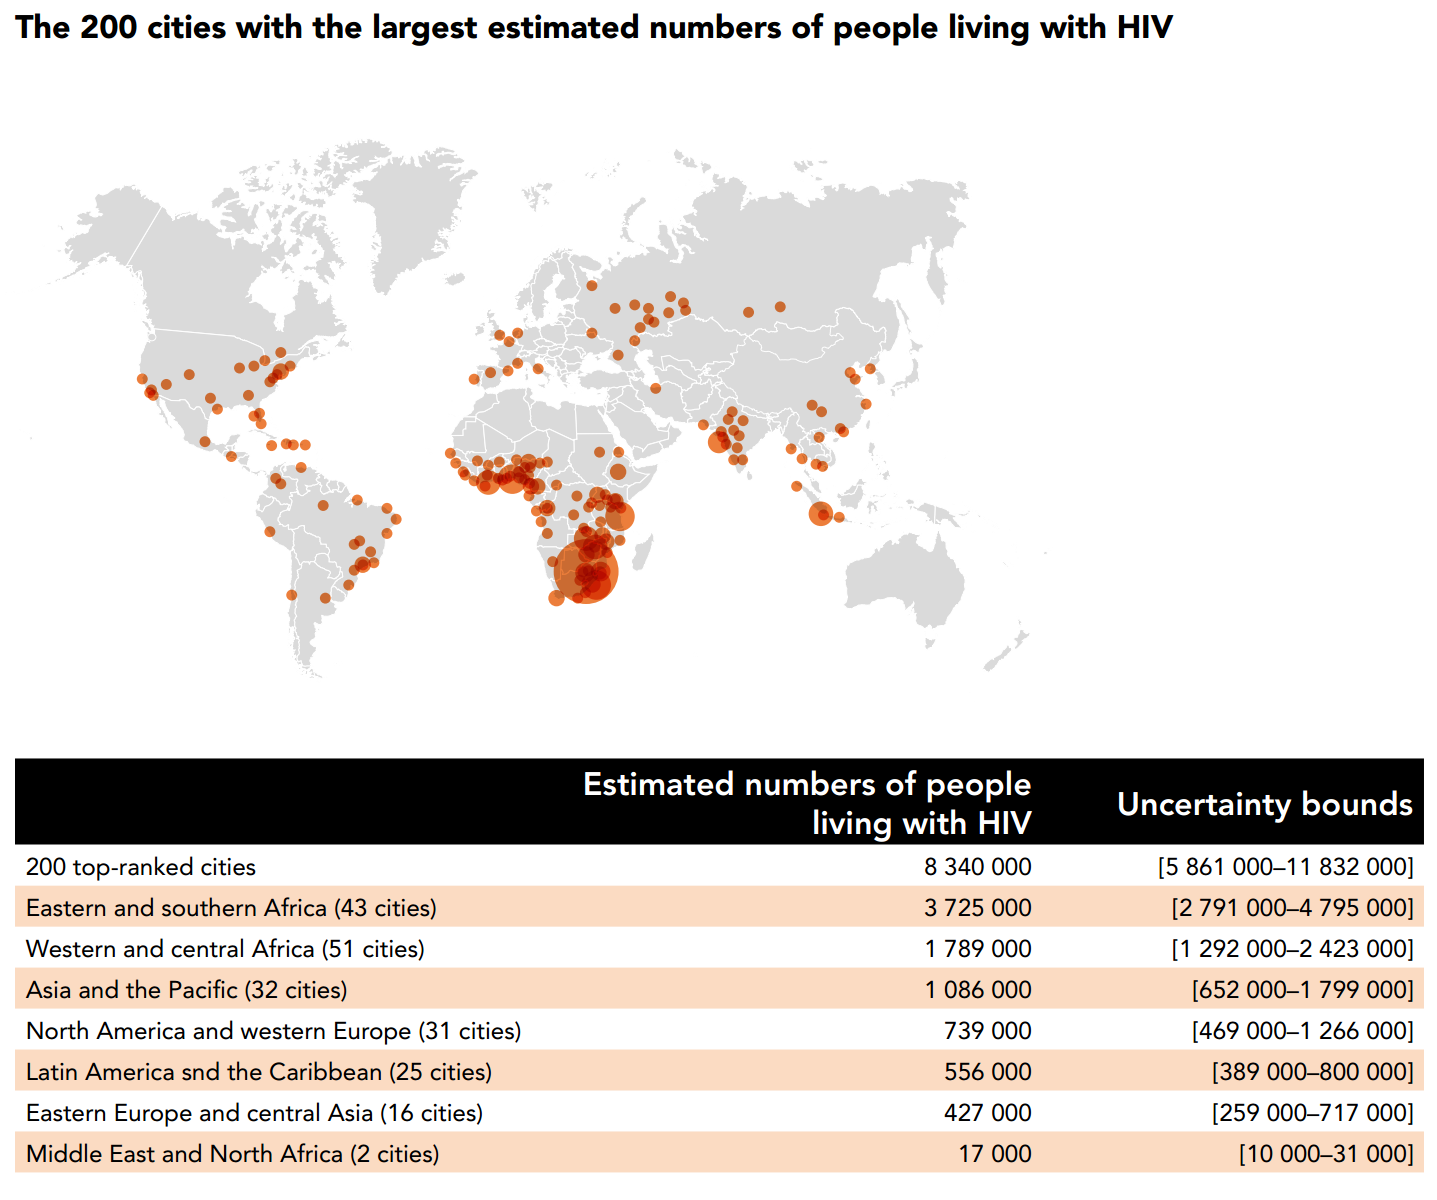 The 200 cities with the largest estimates numbers of people living with HIV